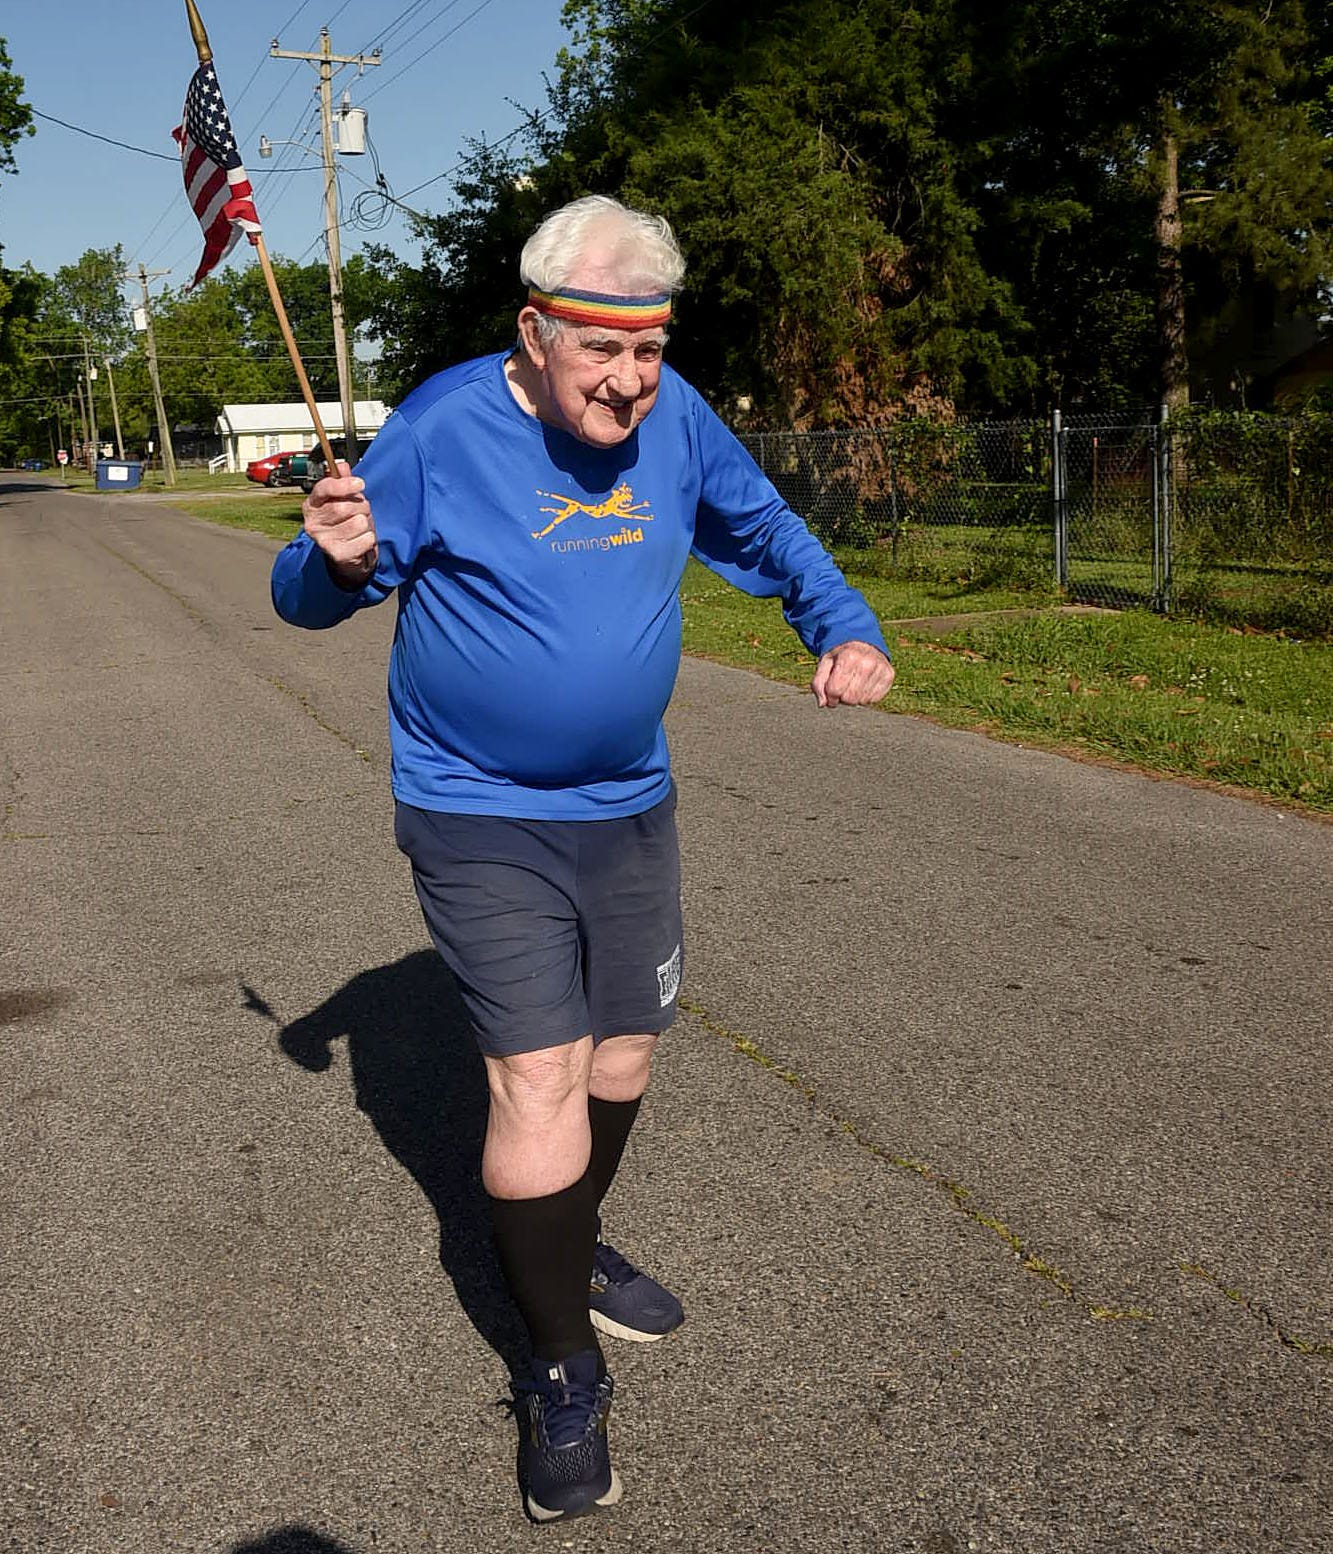 96-year-old WWII veteran is running coast-to-coast again. This time to raise money to sail a restored ship